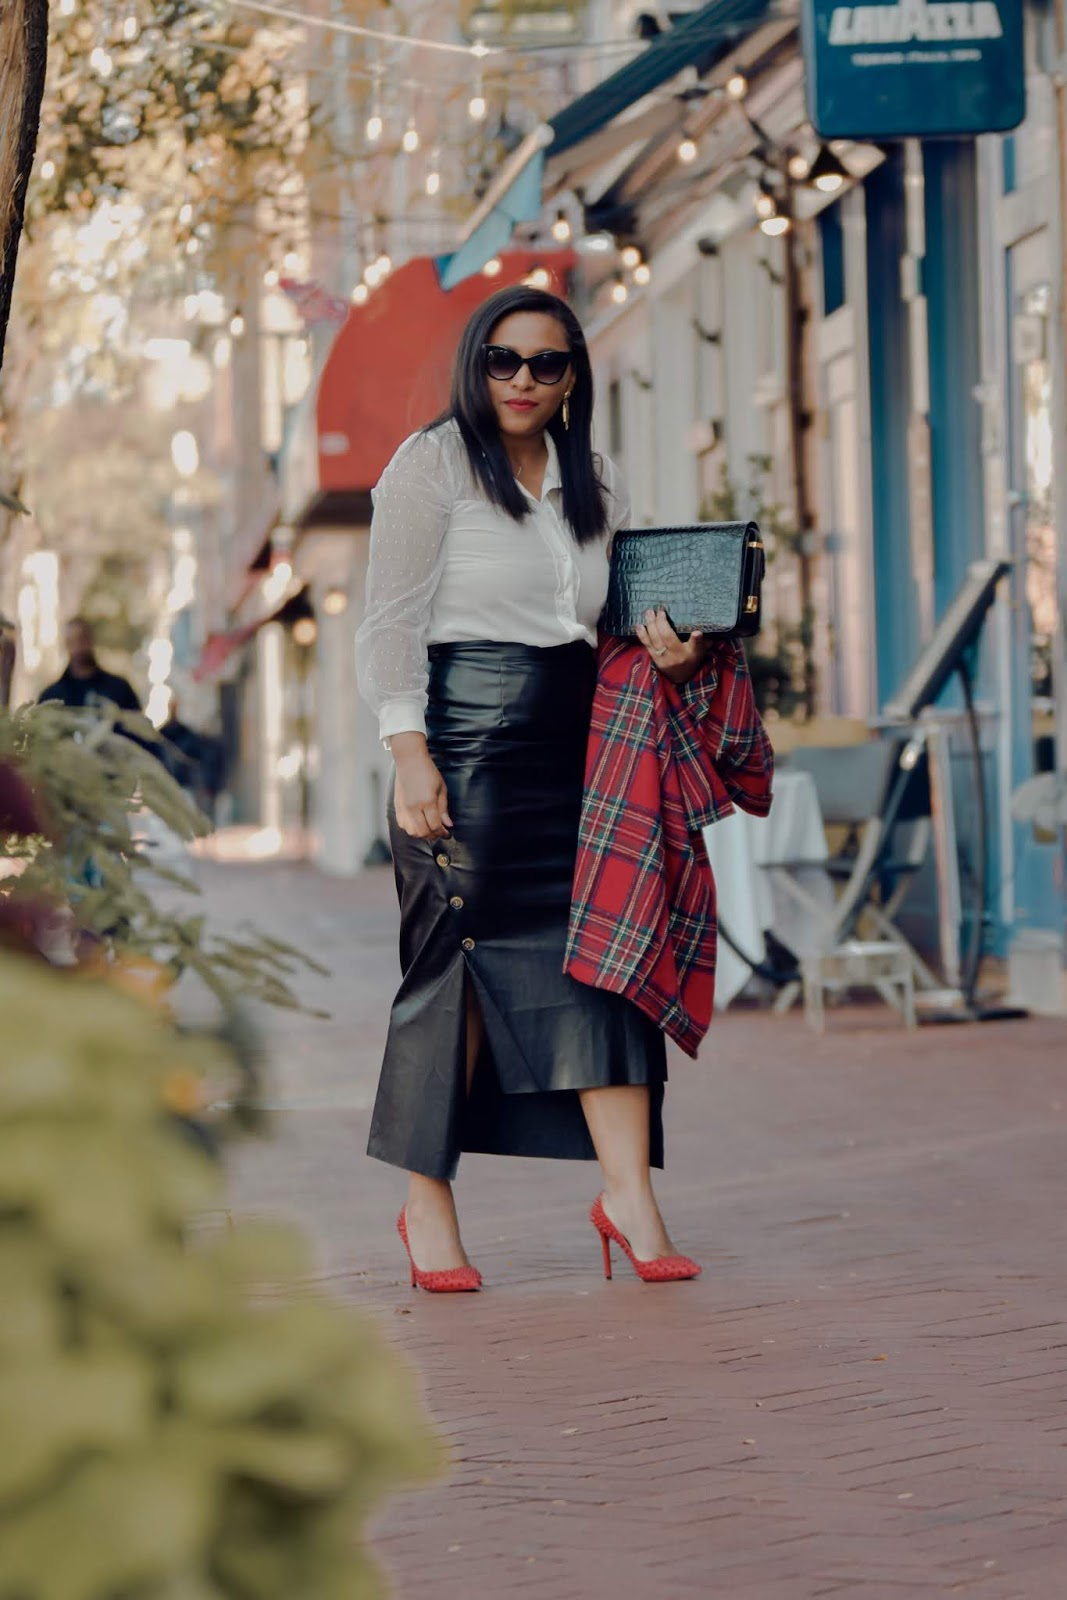 Femme luxe, luxe gal, pattys kloset, holiday outfit ideas